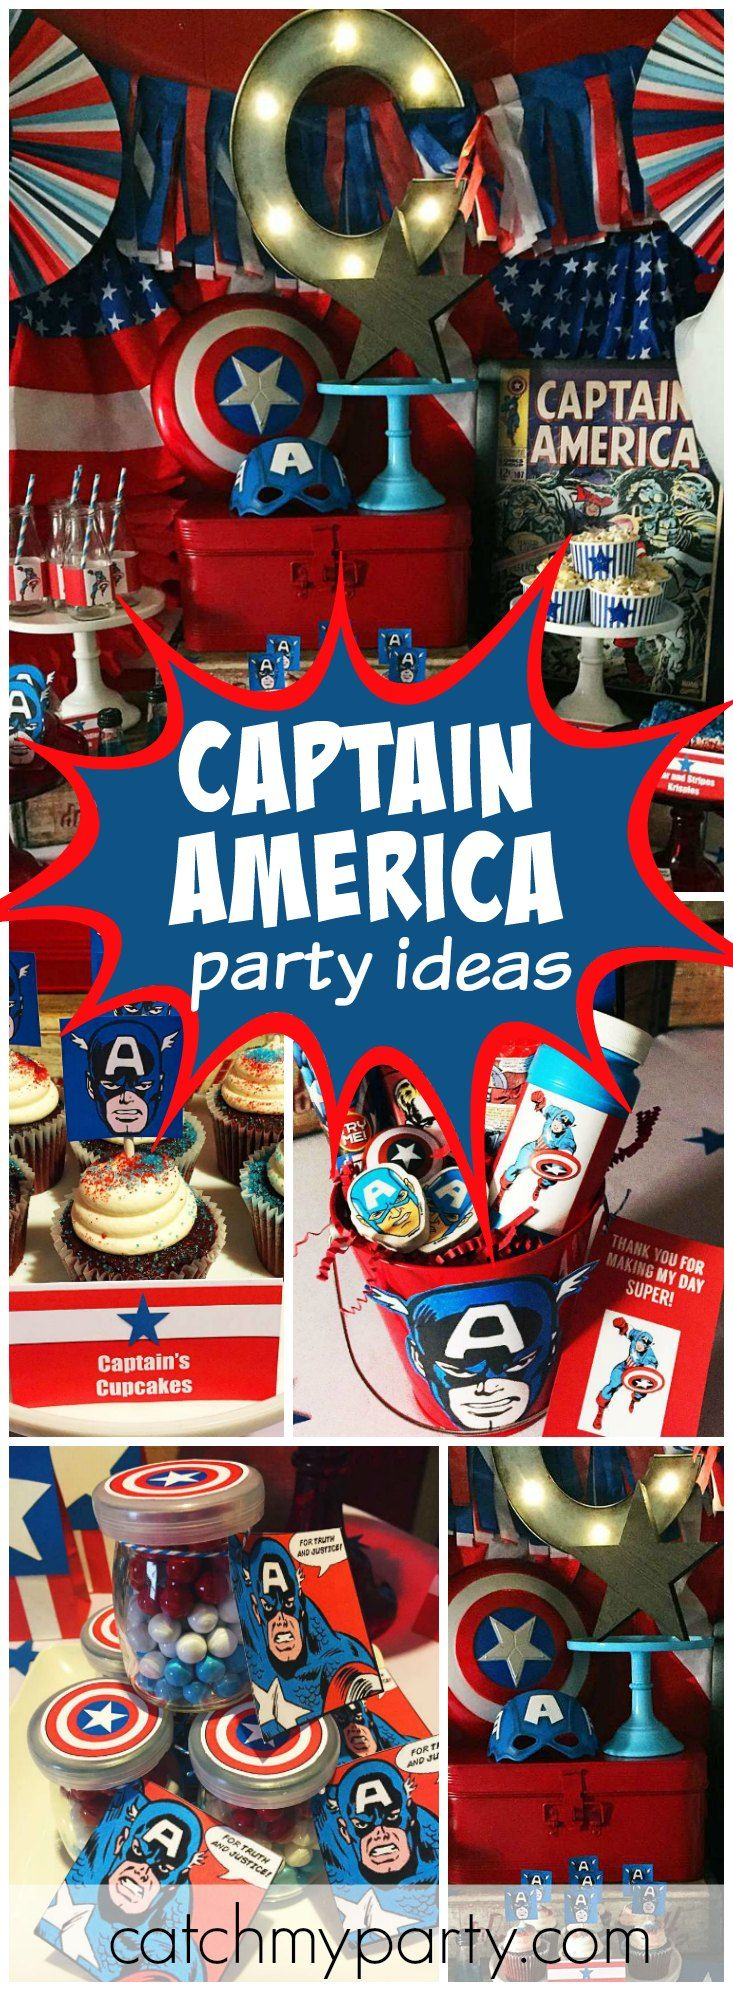 Check out this vintage Captain America birthday party! See more party ideas at CatchMyParty.com!